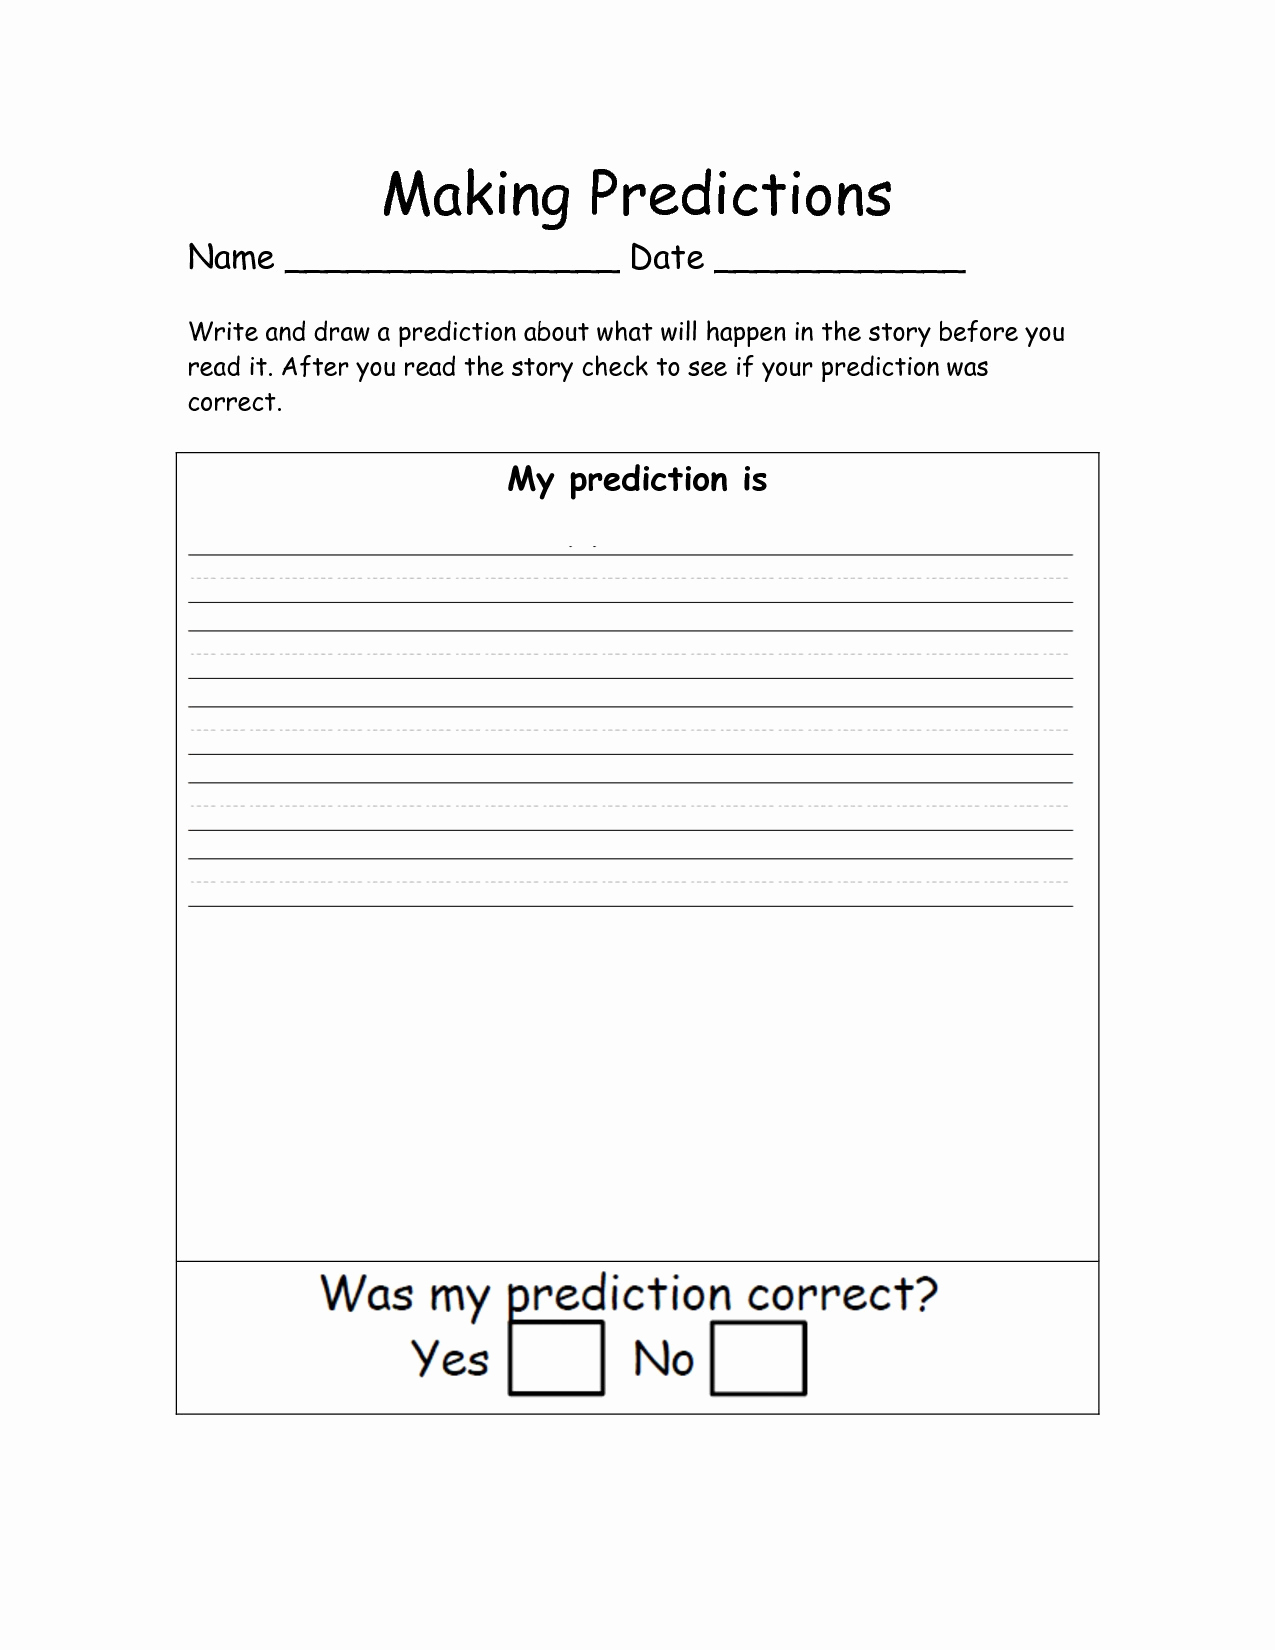 Making Predictions Worksheets 2nd Grade Lovely 20 Making Predictions Worksheet 2nd Grade